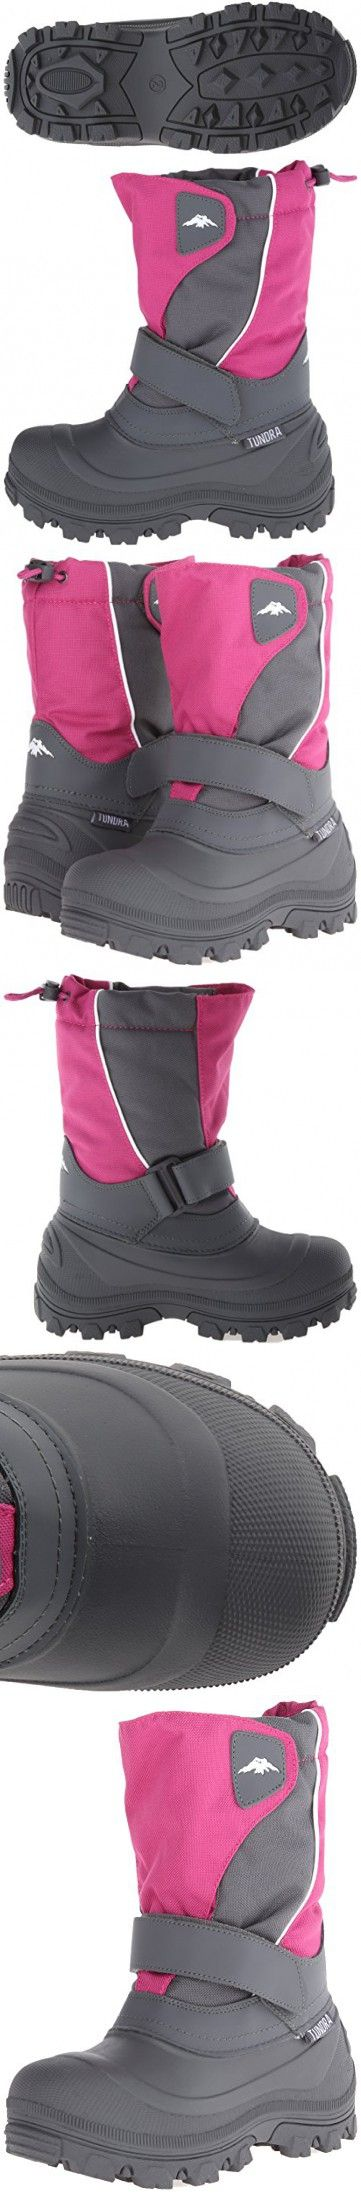 Tundra Quebec N Winter Boot (Infant/Toddler/Little Kid/Big Kid), Fuchsia Charcoal, 7 M US Toddler